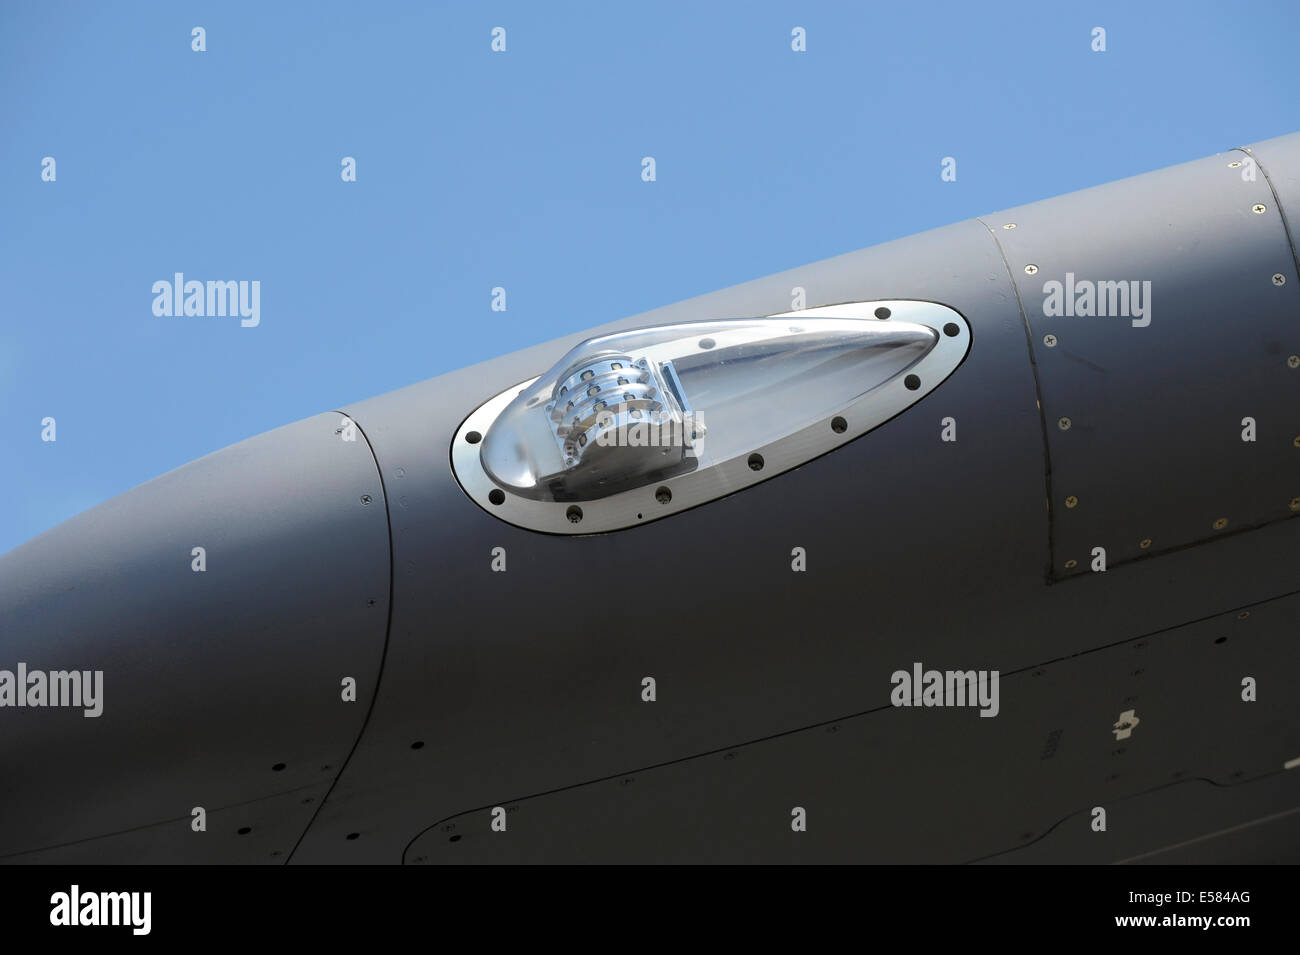 Airbus Military A400M wing tip light - Stock Image